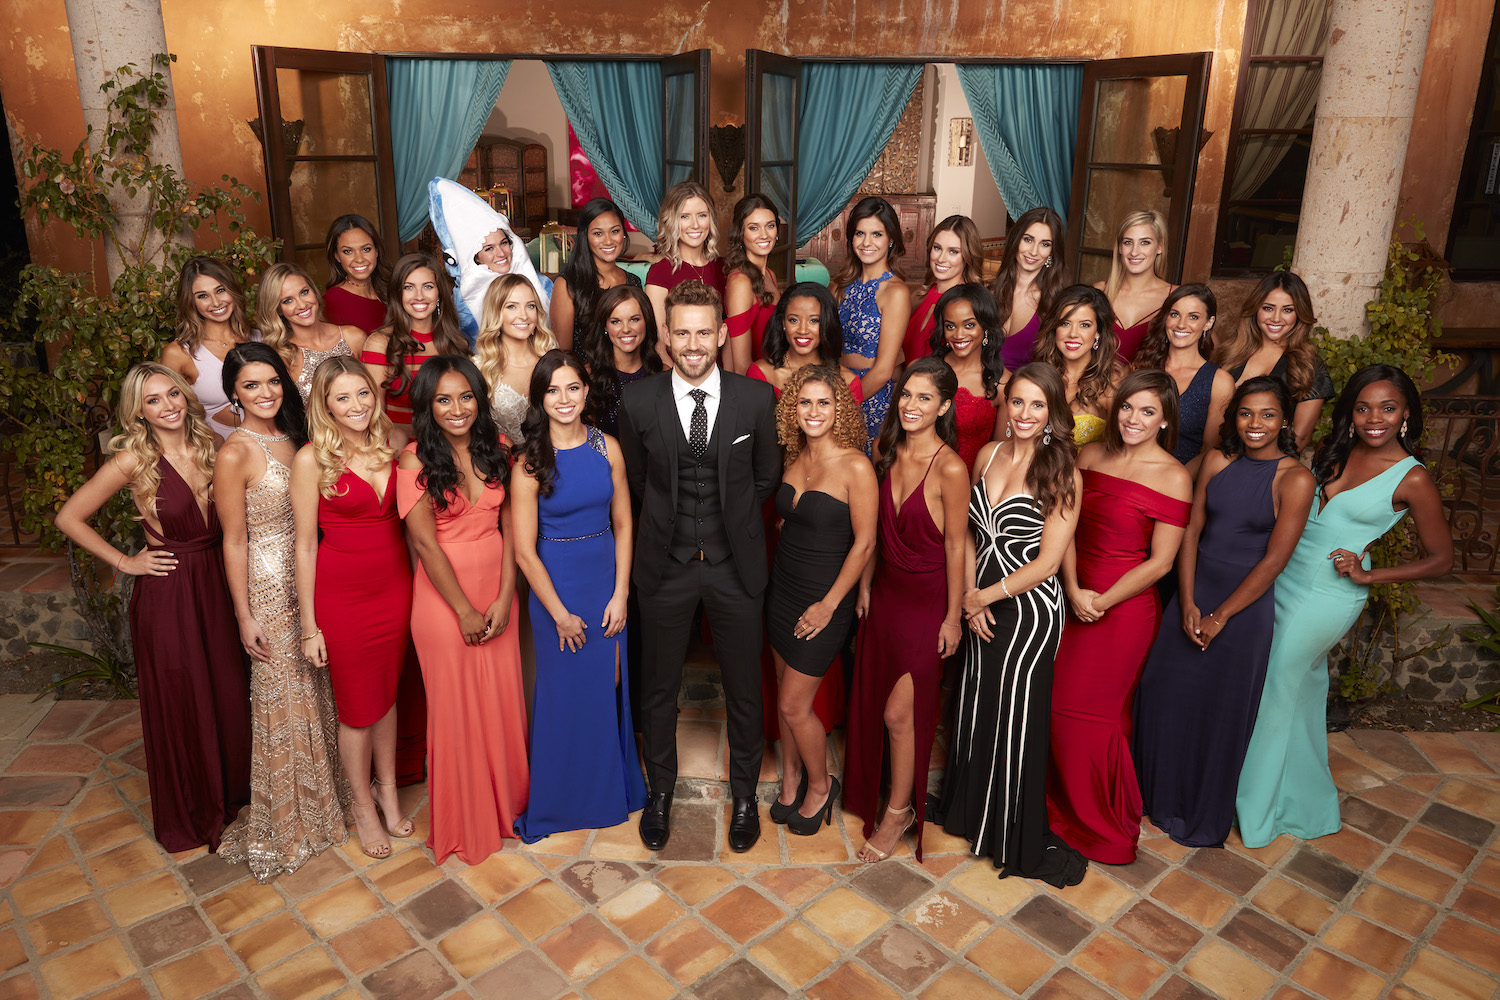 Bachelor Nick Viall searched for (and hopefully found) love in a drama-filled season of the beloved reality show.